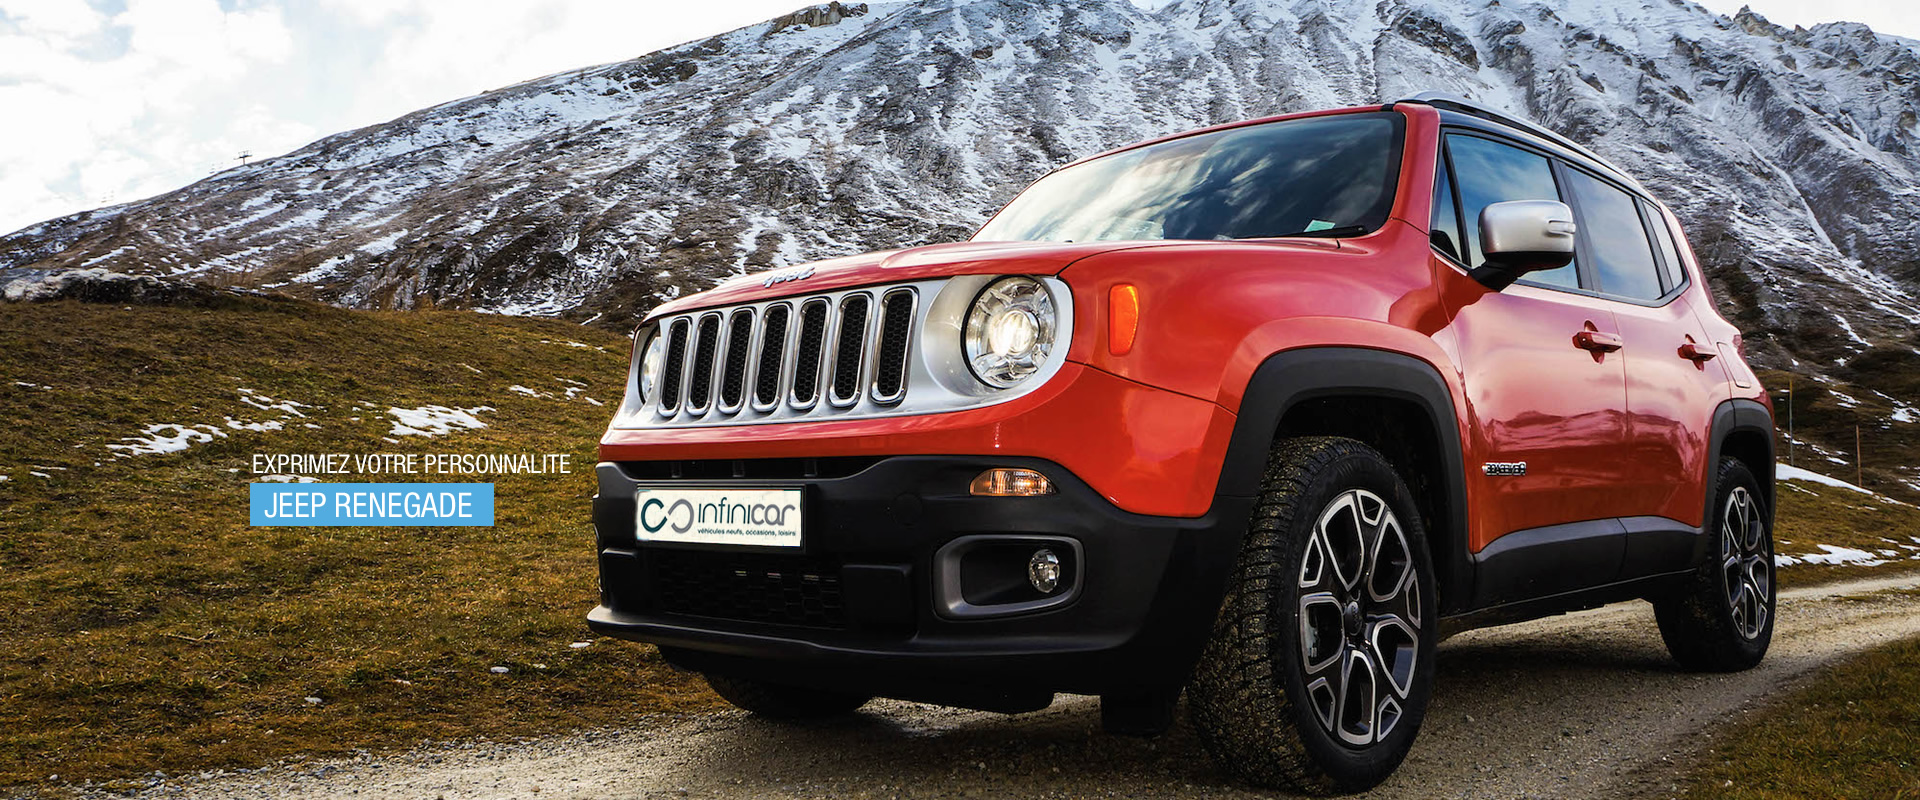 Jeep Renegage